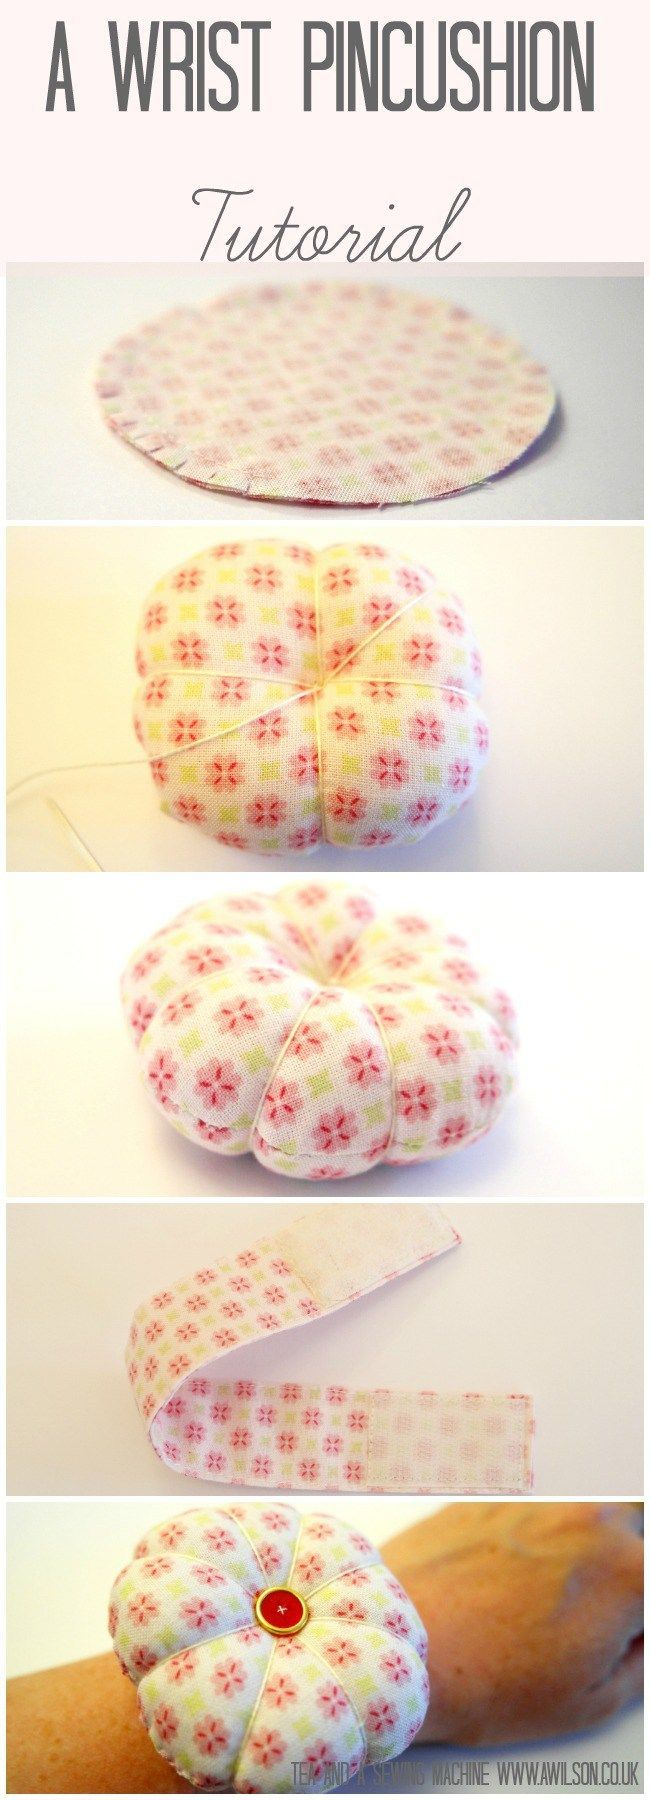 how to make a wrist pincushion tutorial                                                                                                                                                                                 Más